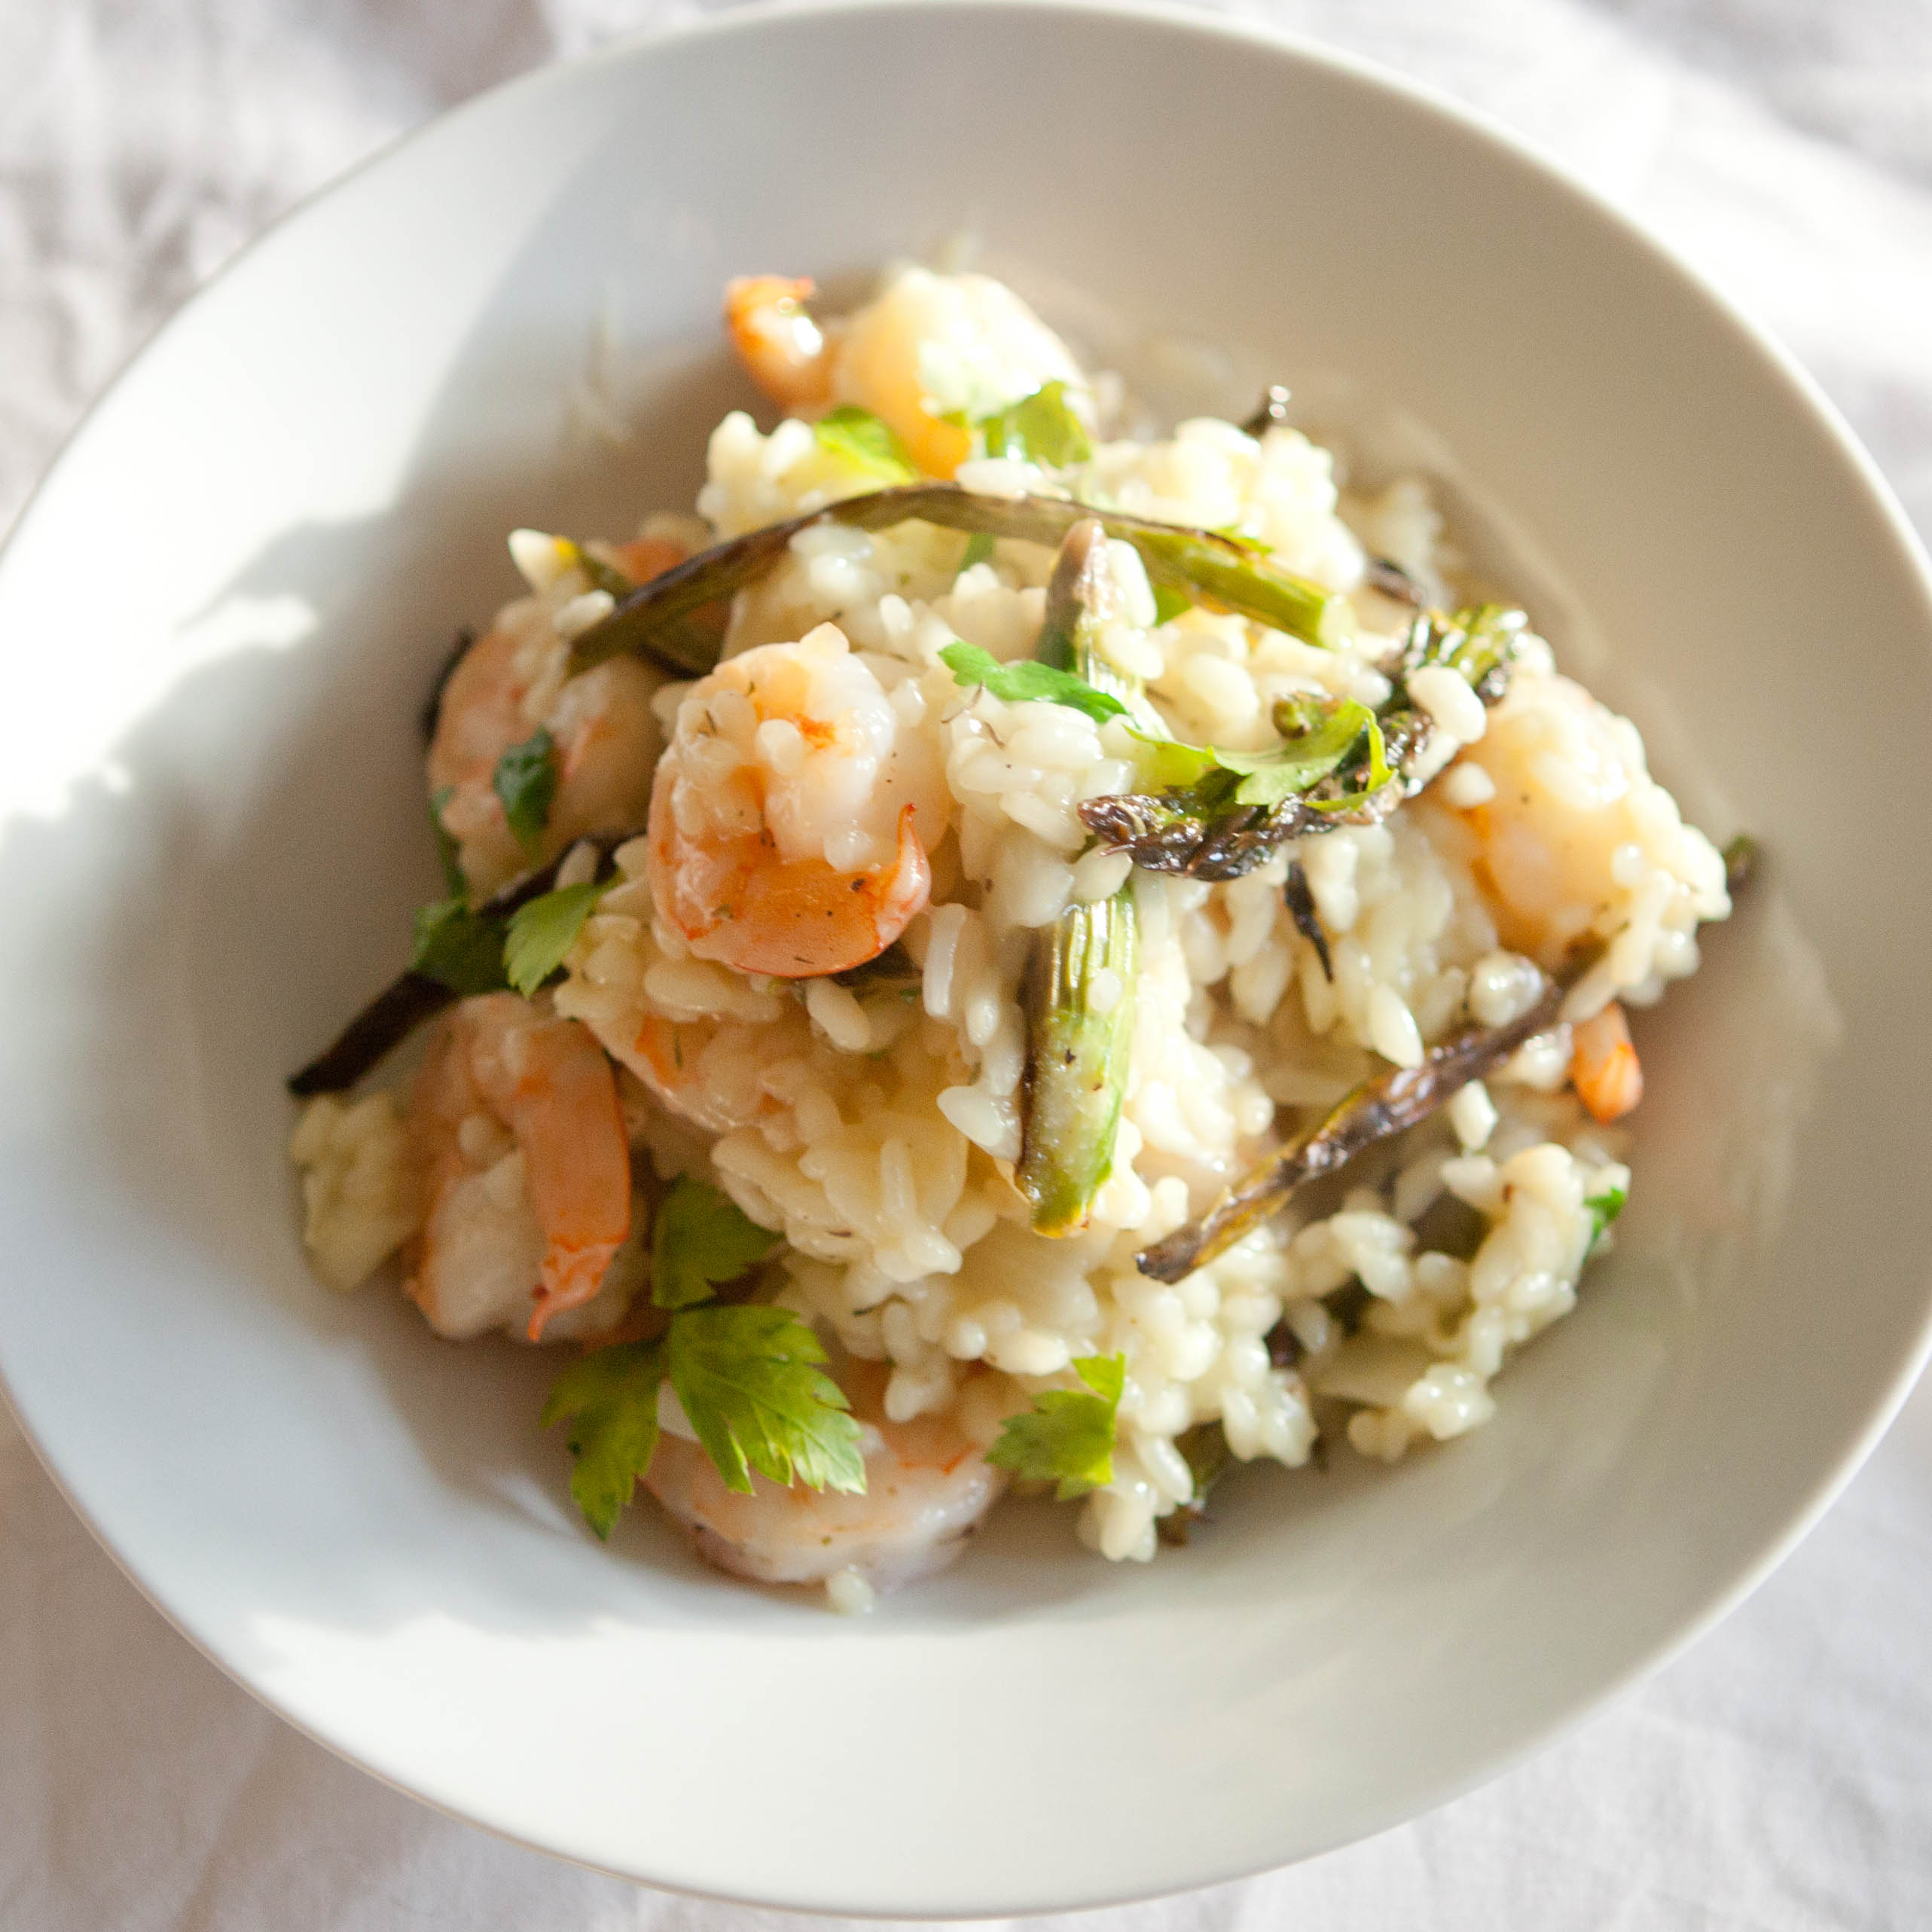 ... May 21, 2013 at 2565 × 2565 in Roasted Asparagus and Shrimp Risotto